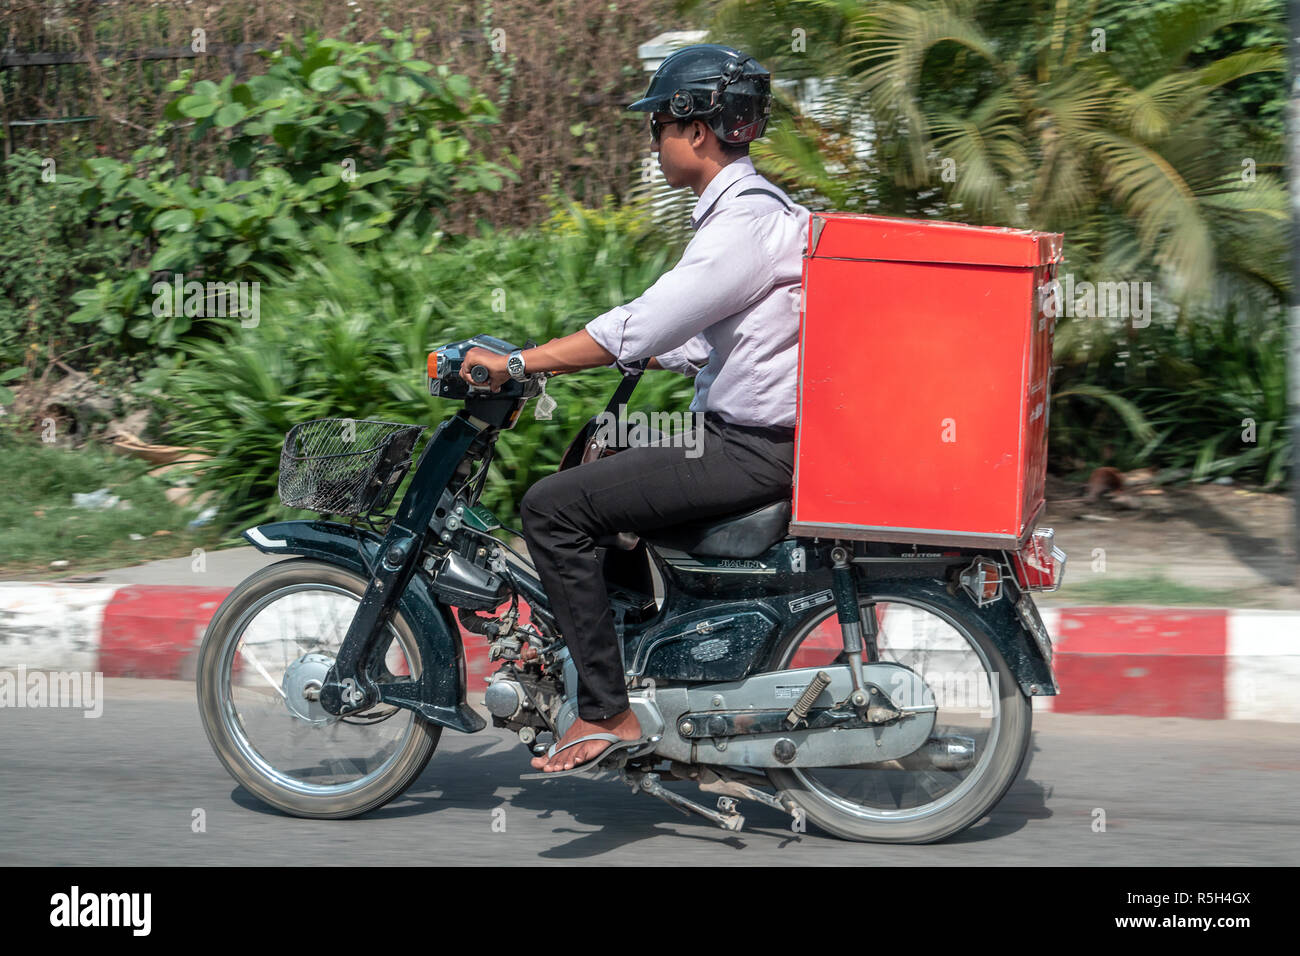 MANDALAY, MYANMAR, MAY 21 2018, Delivery of consignments on motorbike. Motorcyclist rides with delivery in the large red box on street, Burma. - Stock Image